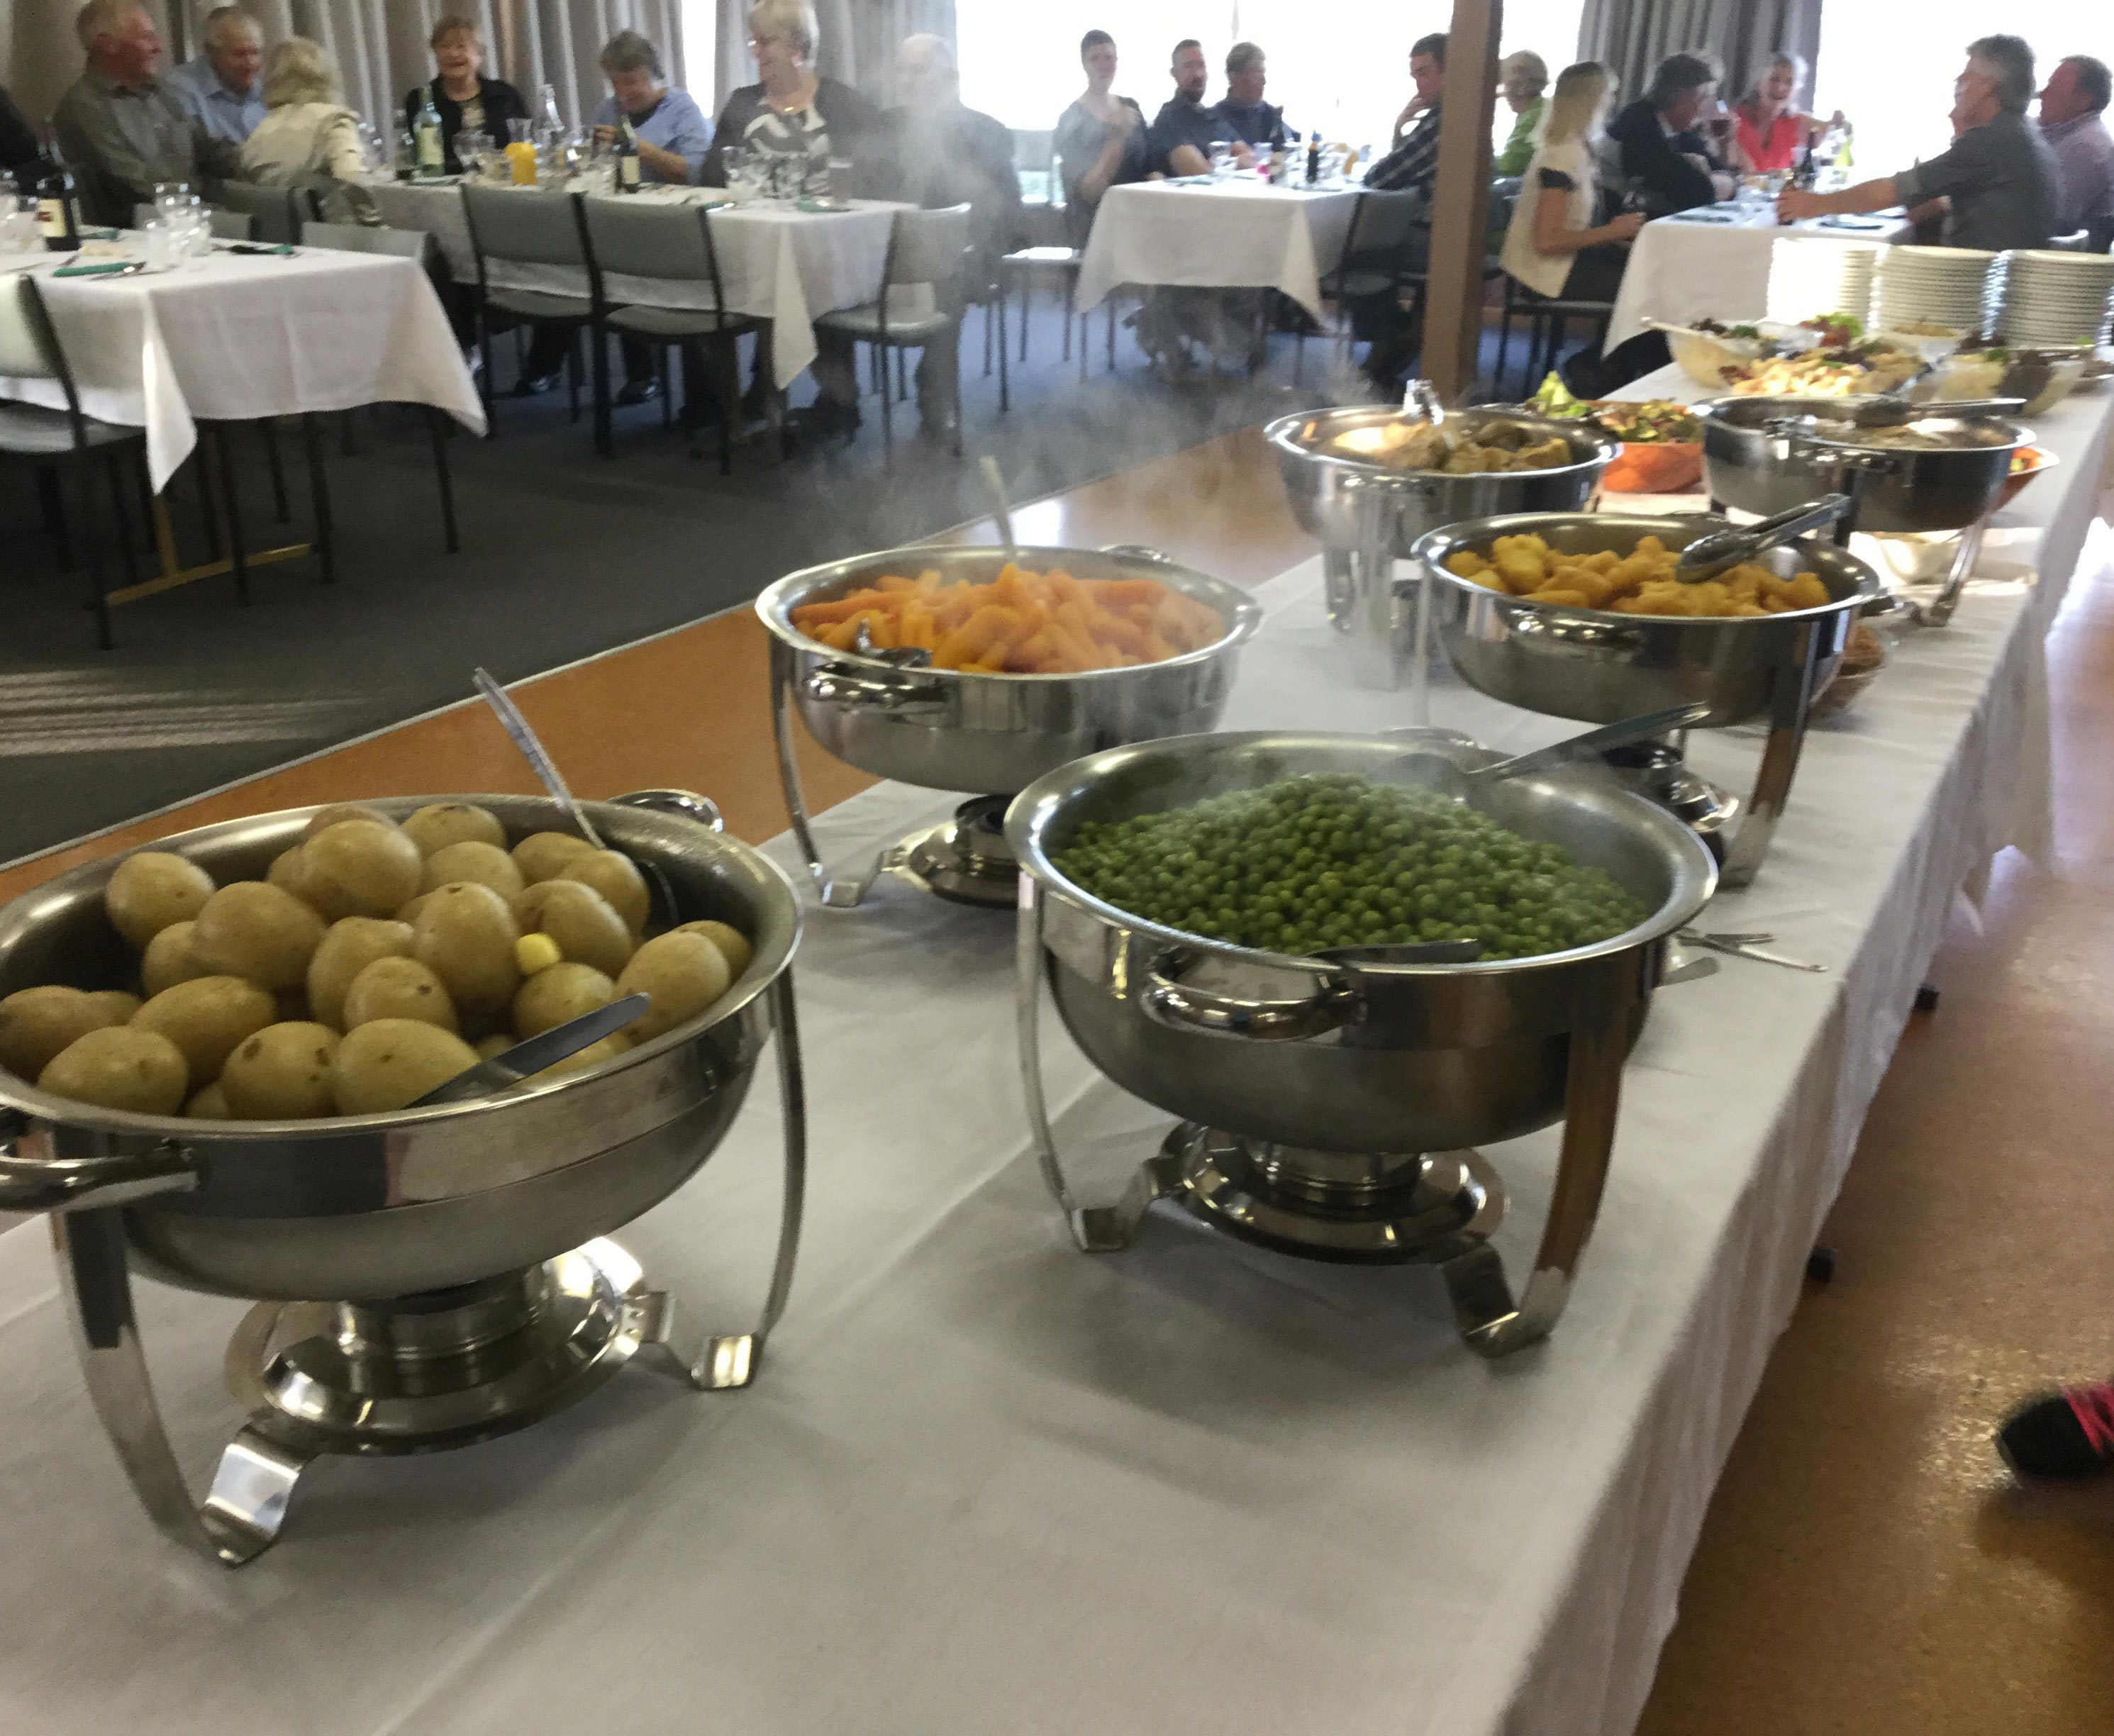 Tasty catering food